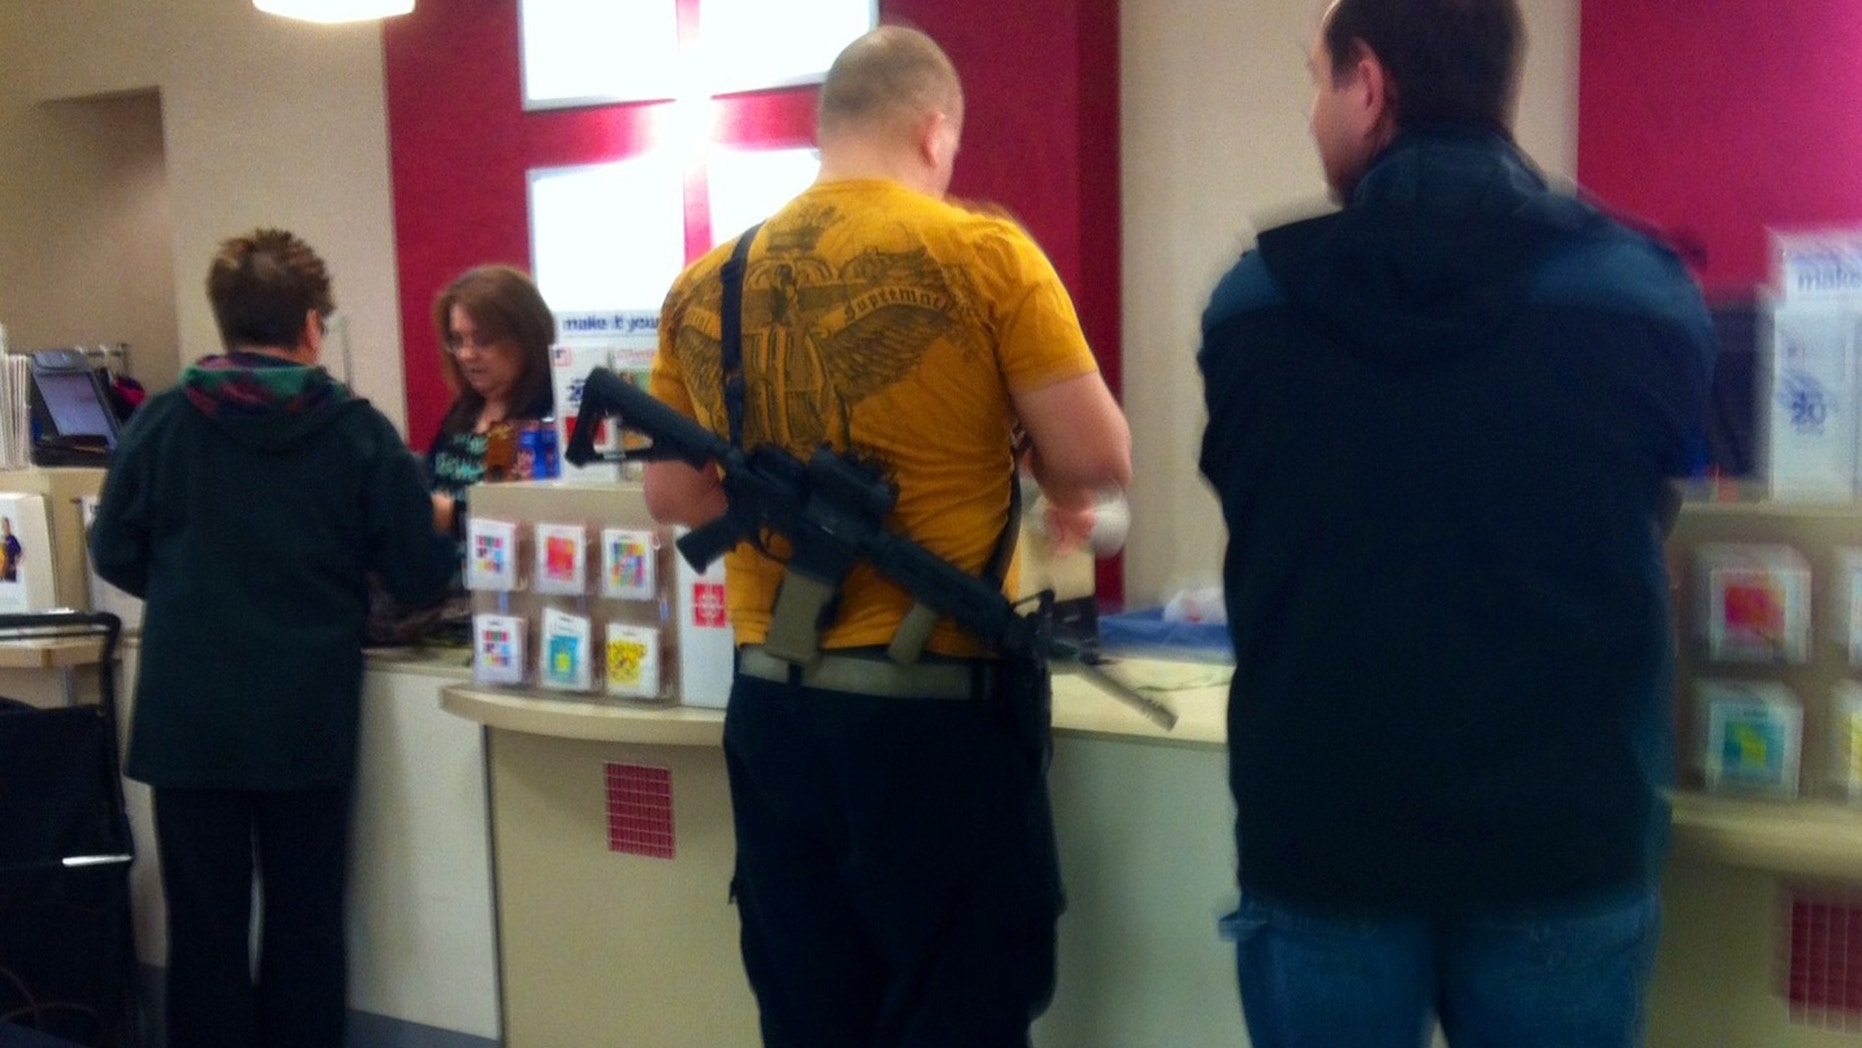 Jan. 13, 2013: This cell phone photo provided by Cindy Yorgason shows a JC Penney shopper with an assault rifle over his shoulder in Riverdale, Utah.